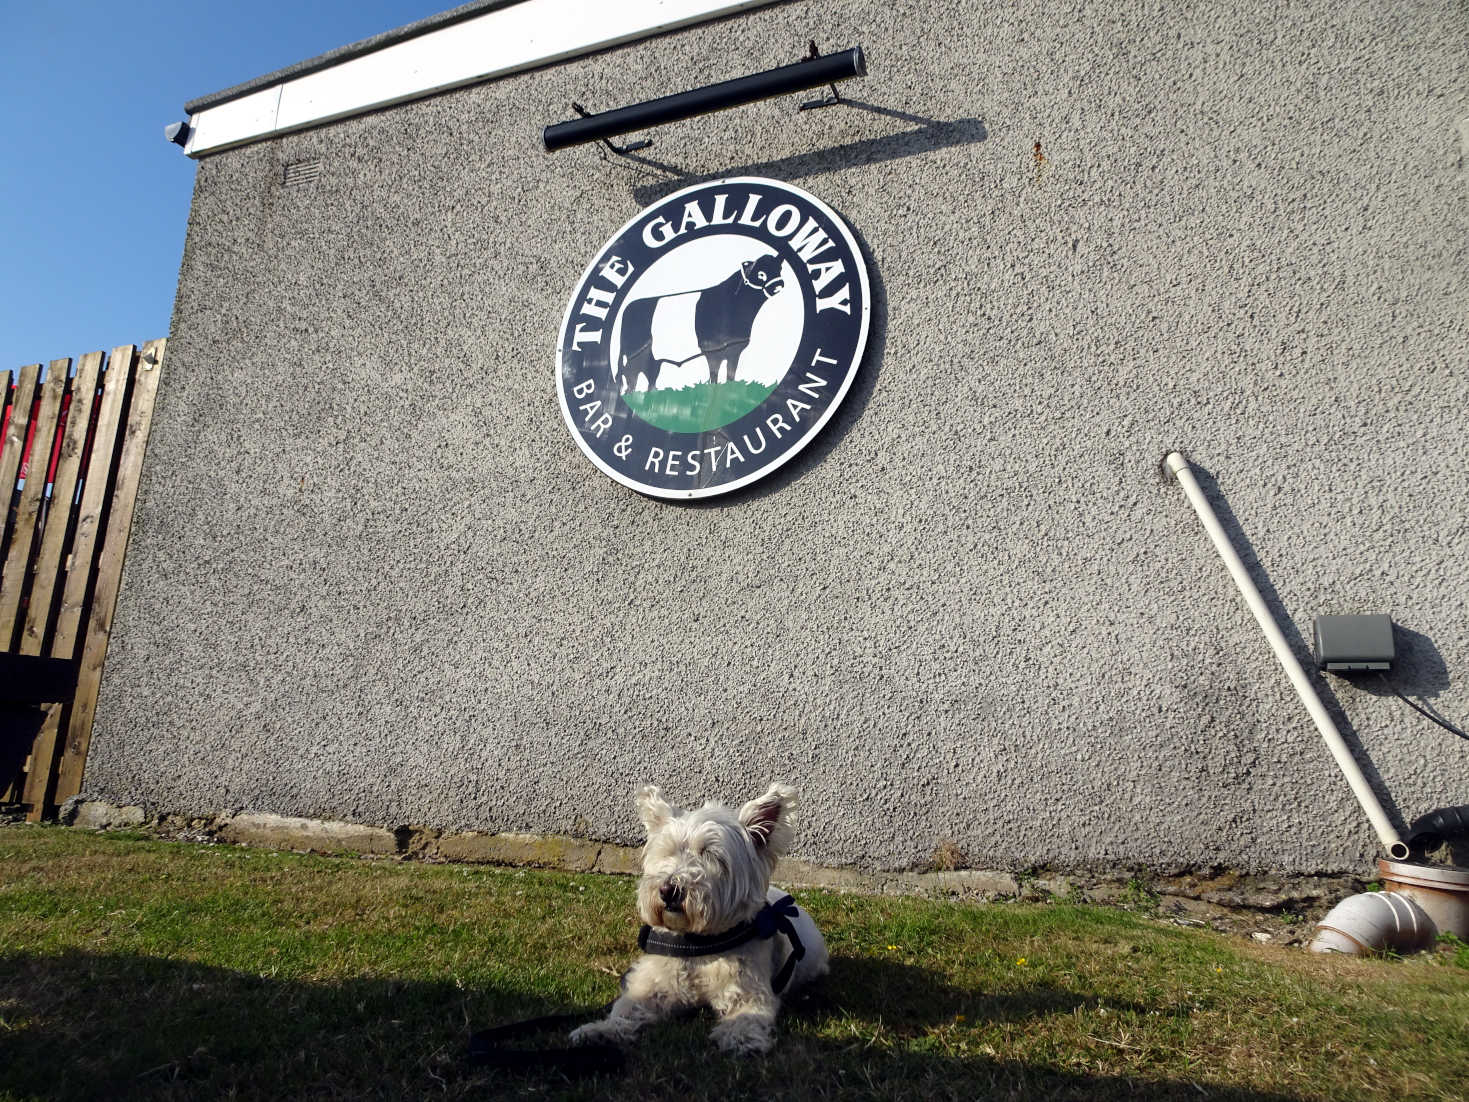 poppy the westie at the Galloway Portpatrick